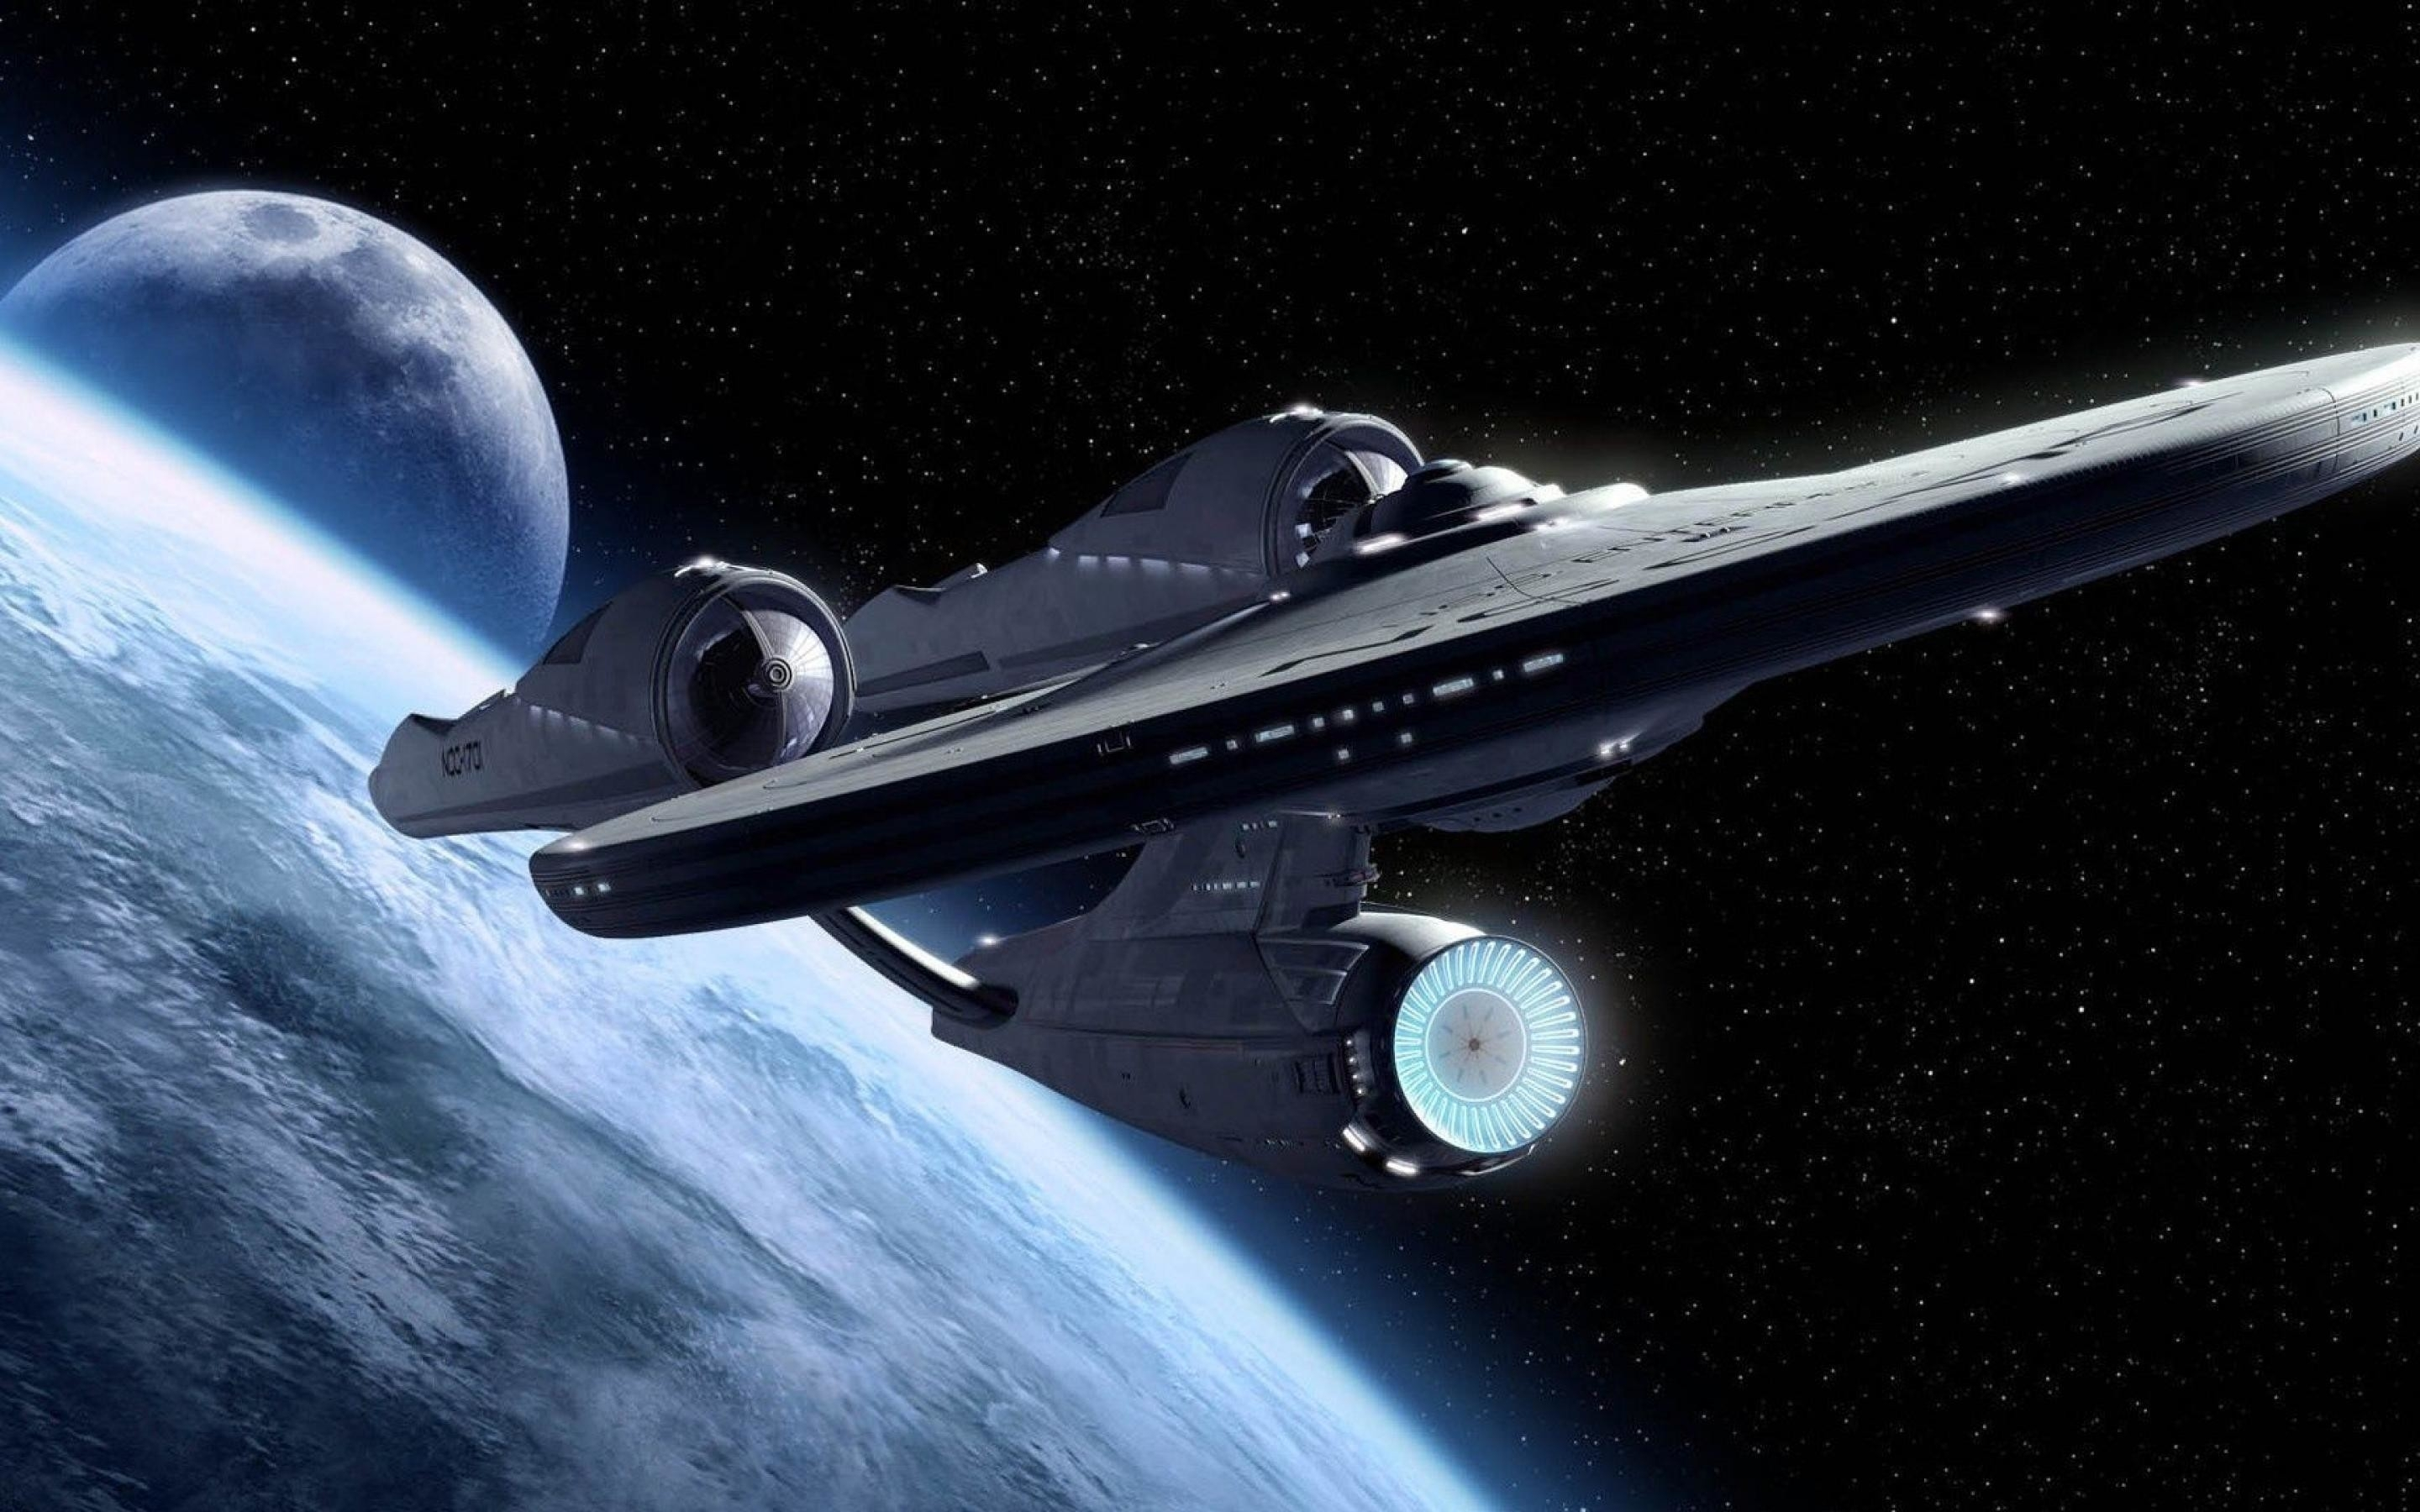 10 Top Star Trek Wallpaper High Resolution FULL HD 1080p For PC Desktop